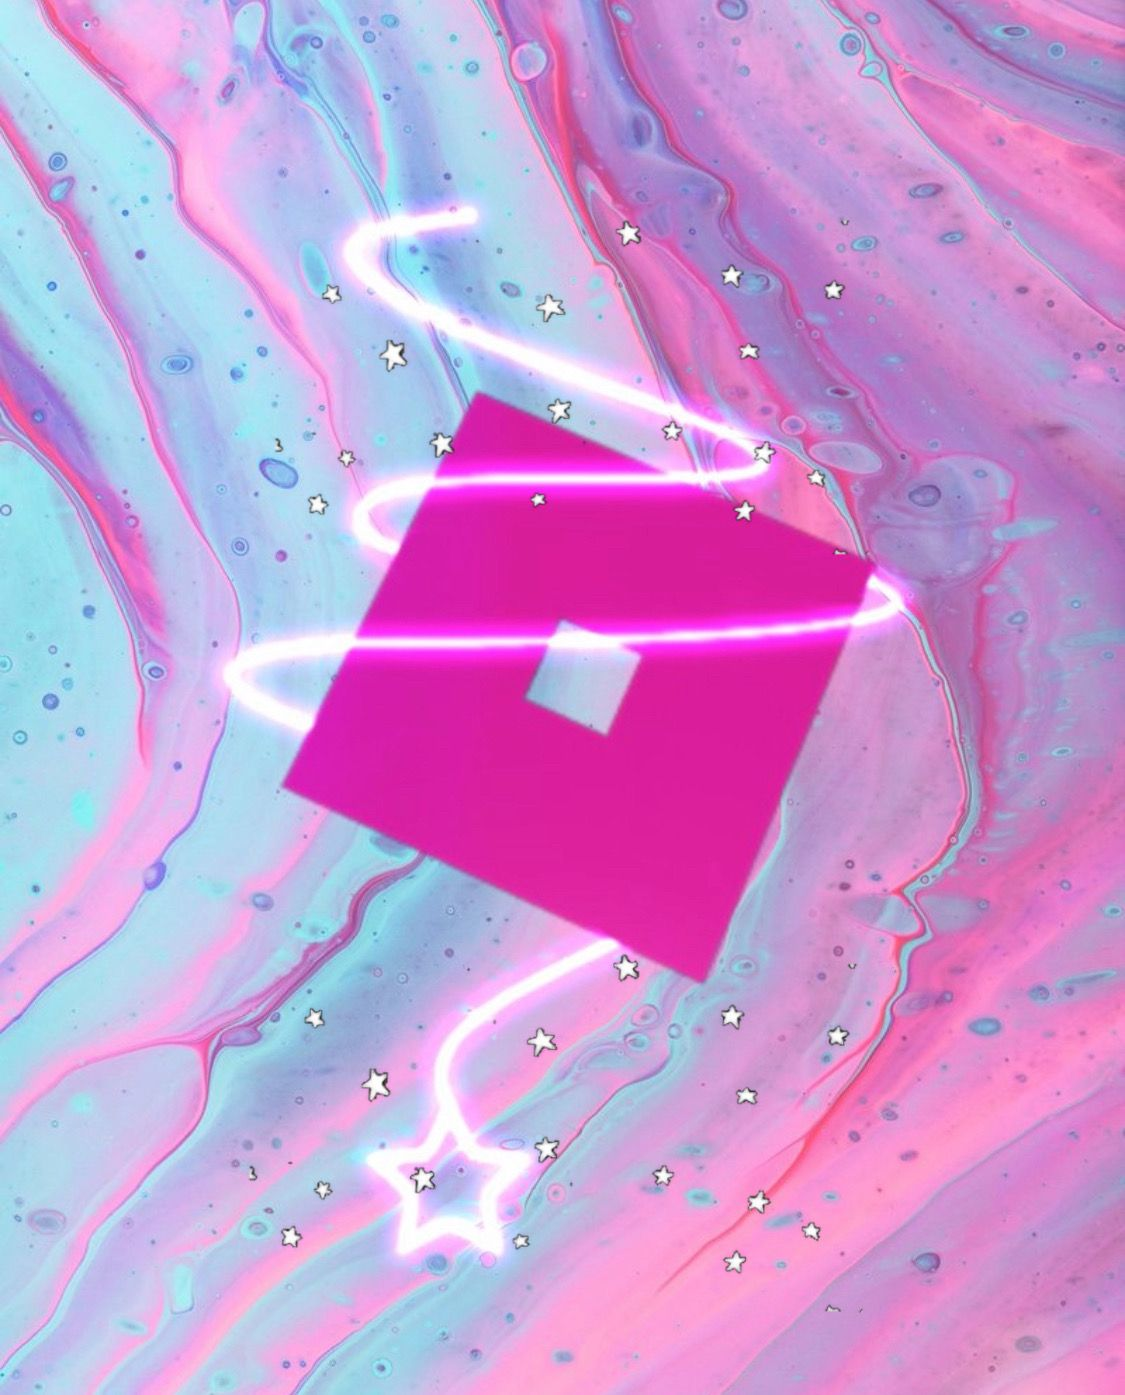 Aesthetic Robloxicon Freetoedit Cute Tumblr Wallpaper Wallpaper Iphone Cute Roblox Animation